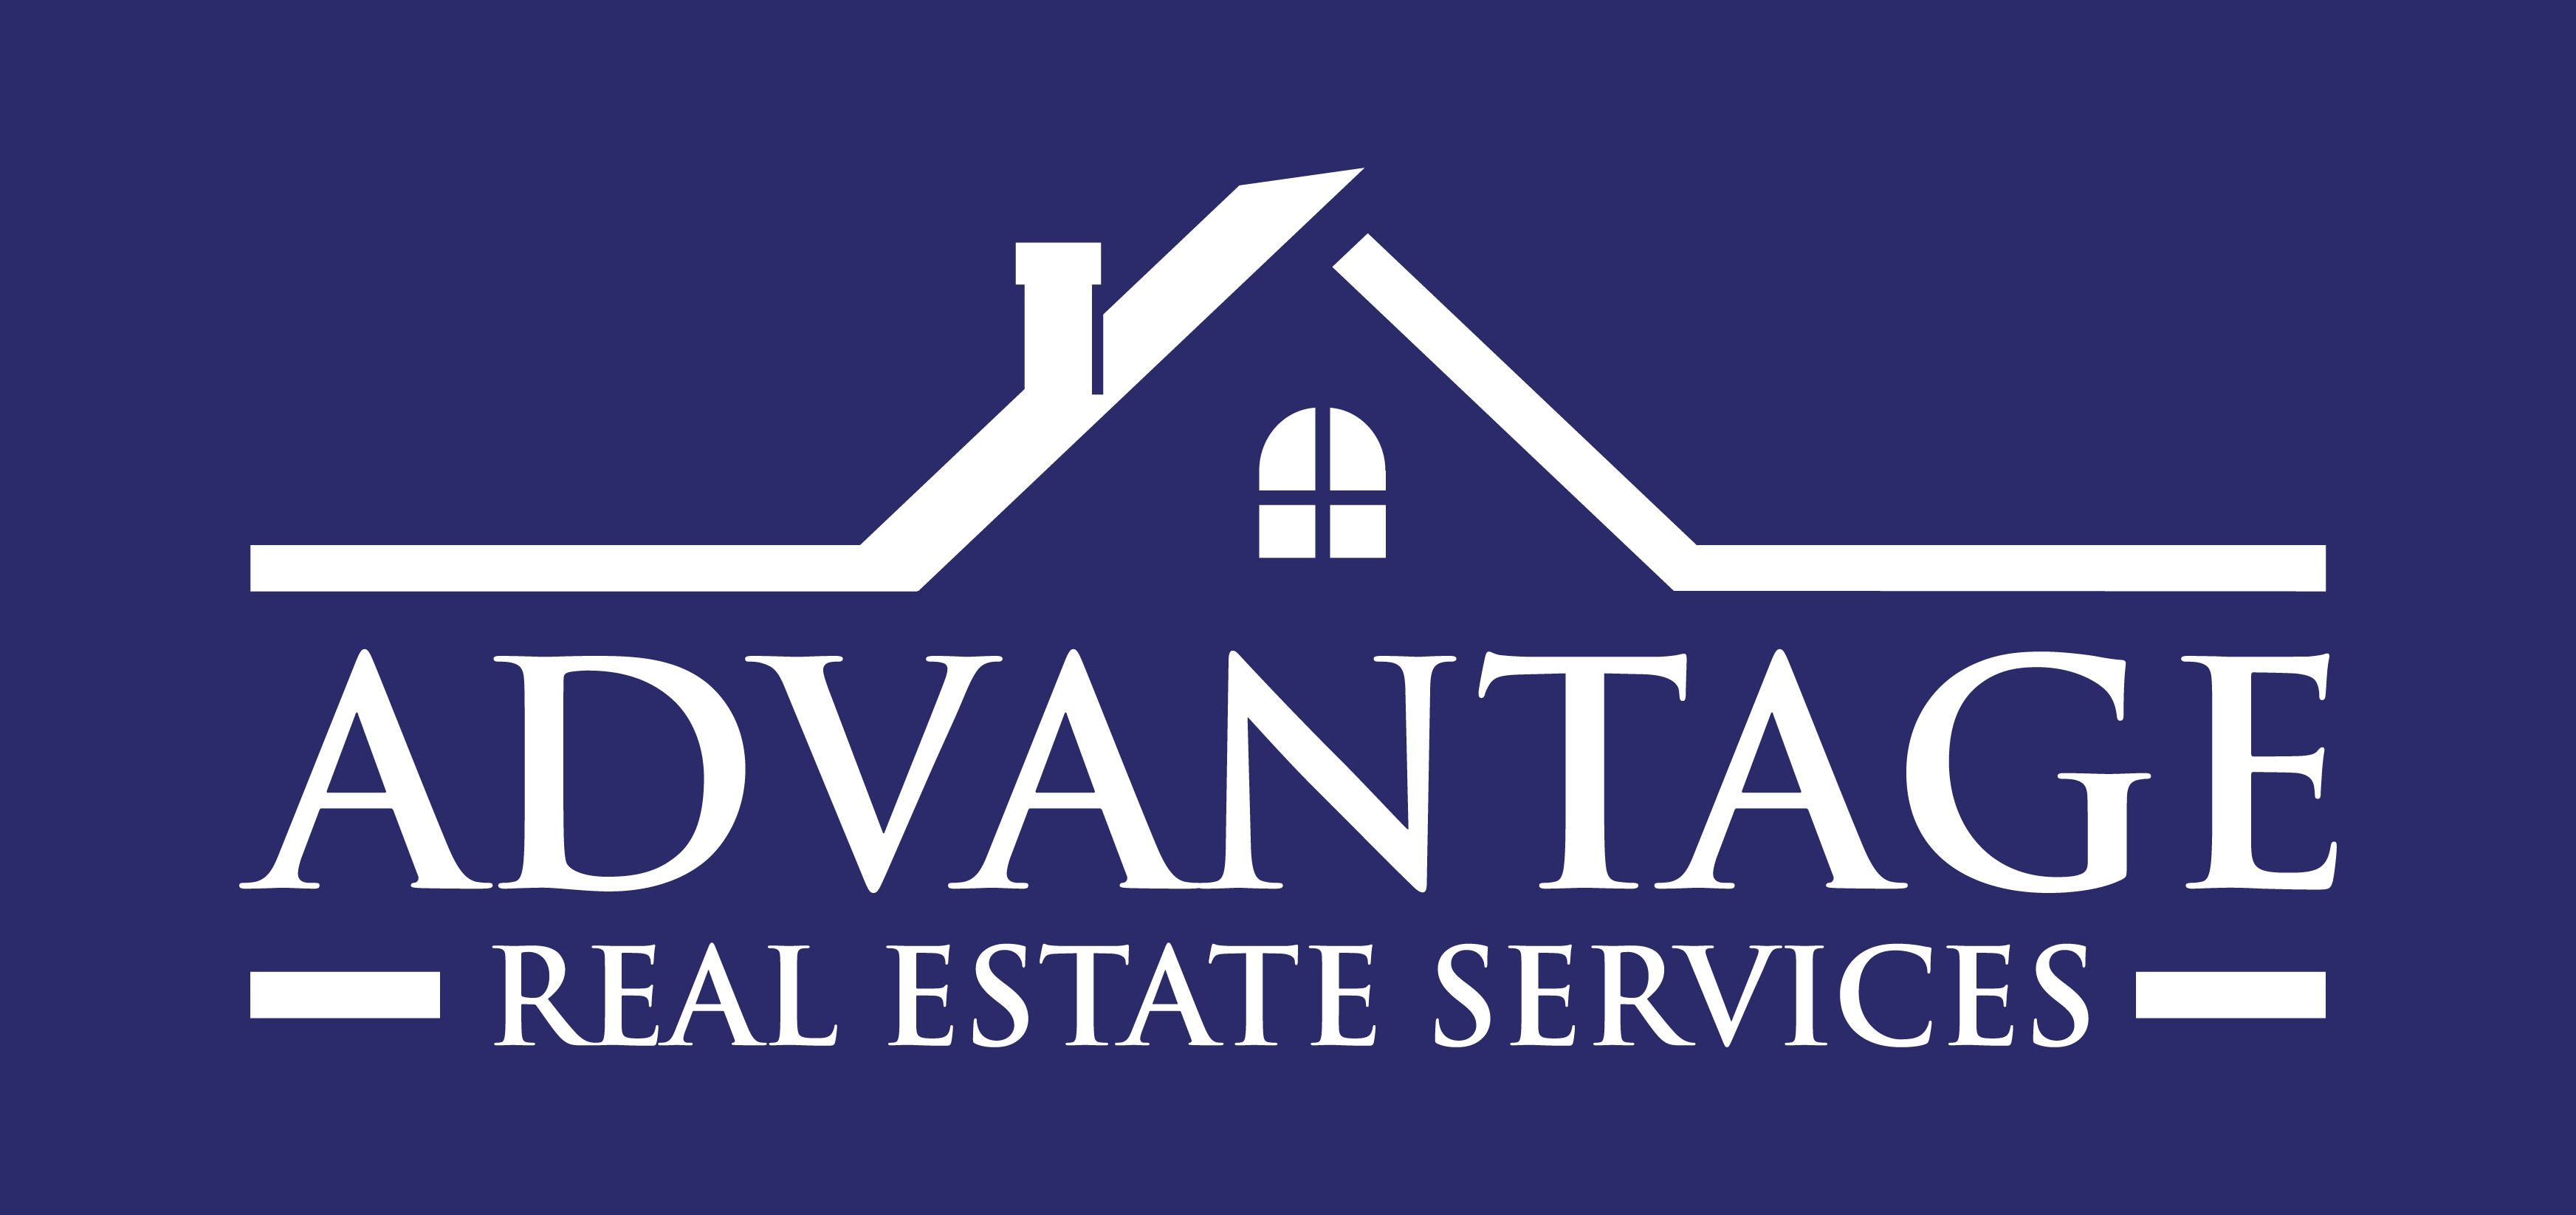 Advantage Real Estate Services